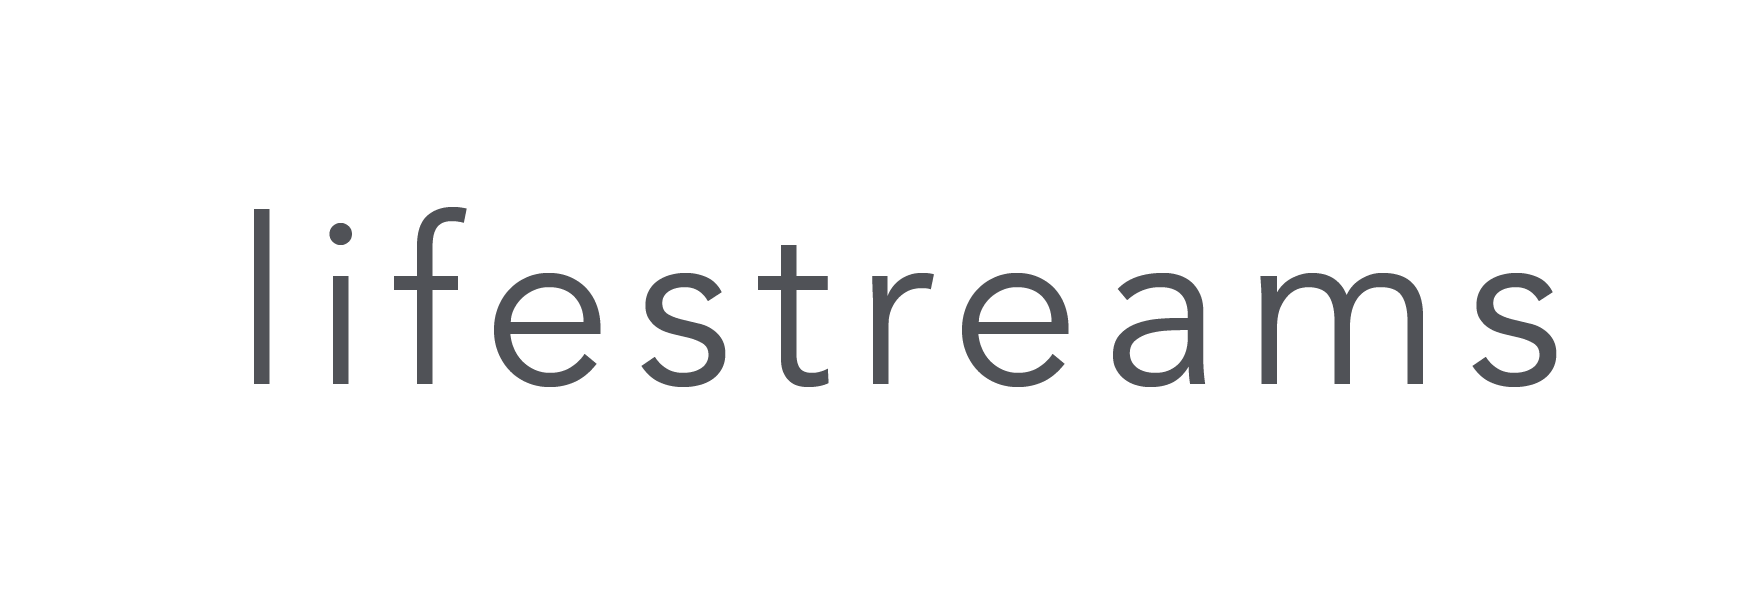 Lifestreams_Logotype.png